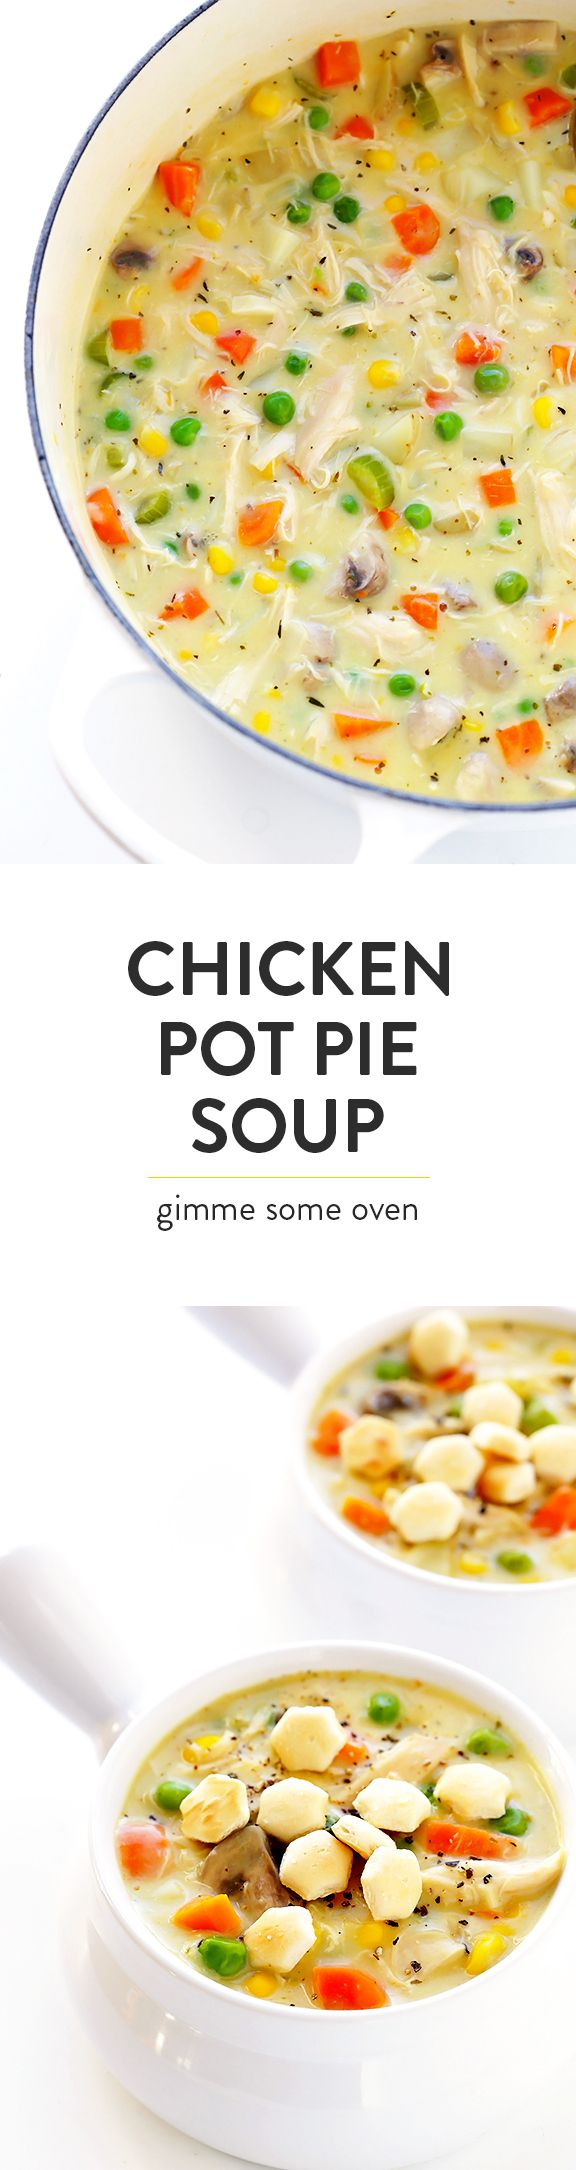 This Chicken Pot Pie Soup recipe is simple to make, lightened up with a few easy tweaks, and deliciously rich and creamy.  Top it with biscuits, crackers, or whatever sounds good! | gimmesomeoven.com